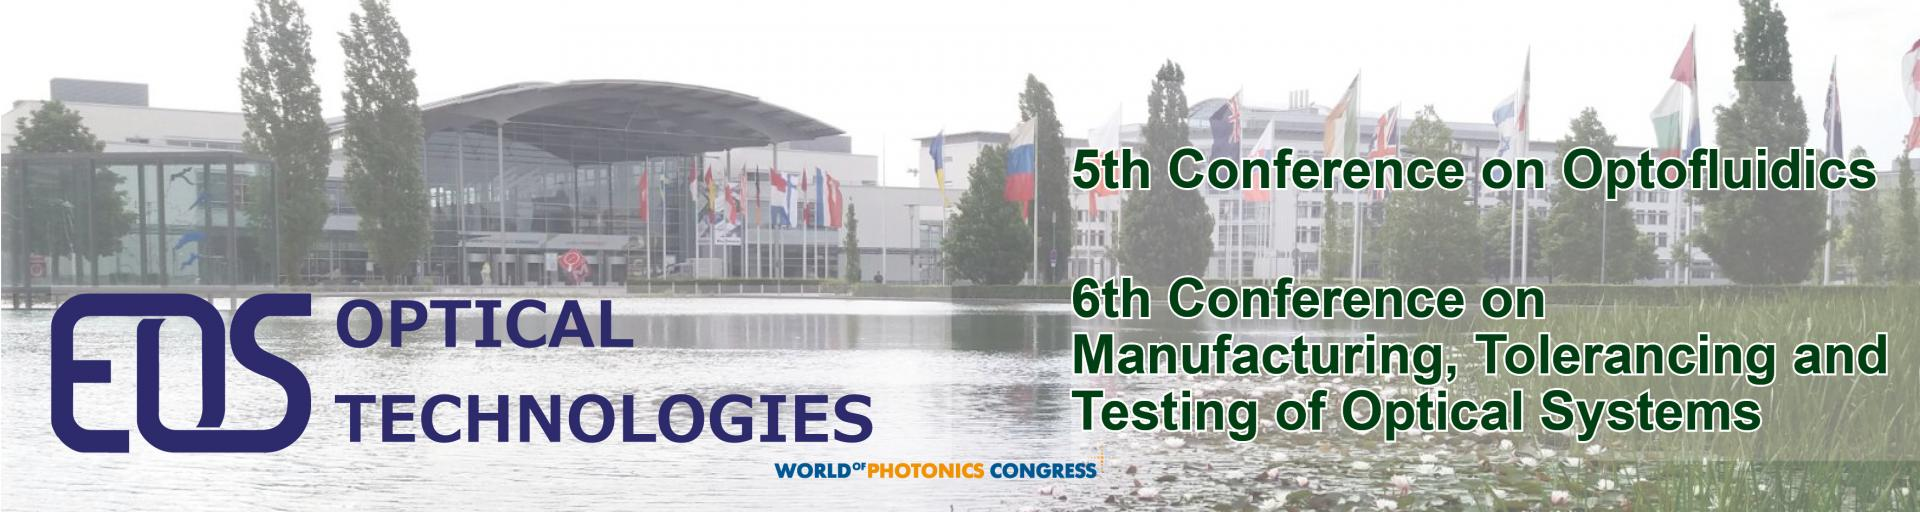 EOS Optical Technologies at the World of Photonics Congress